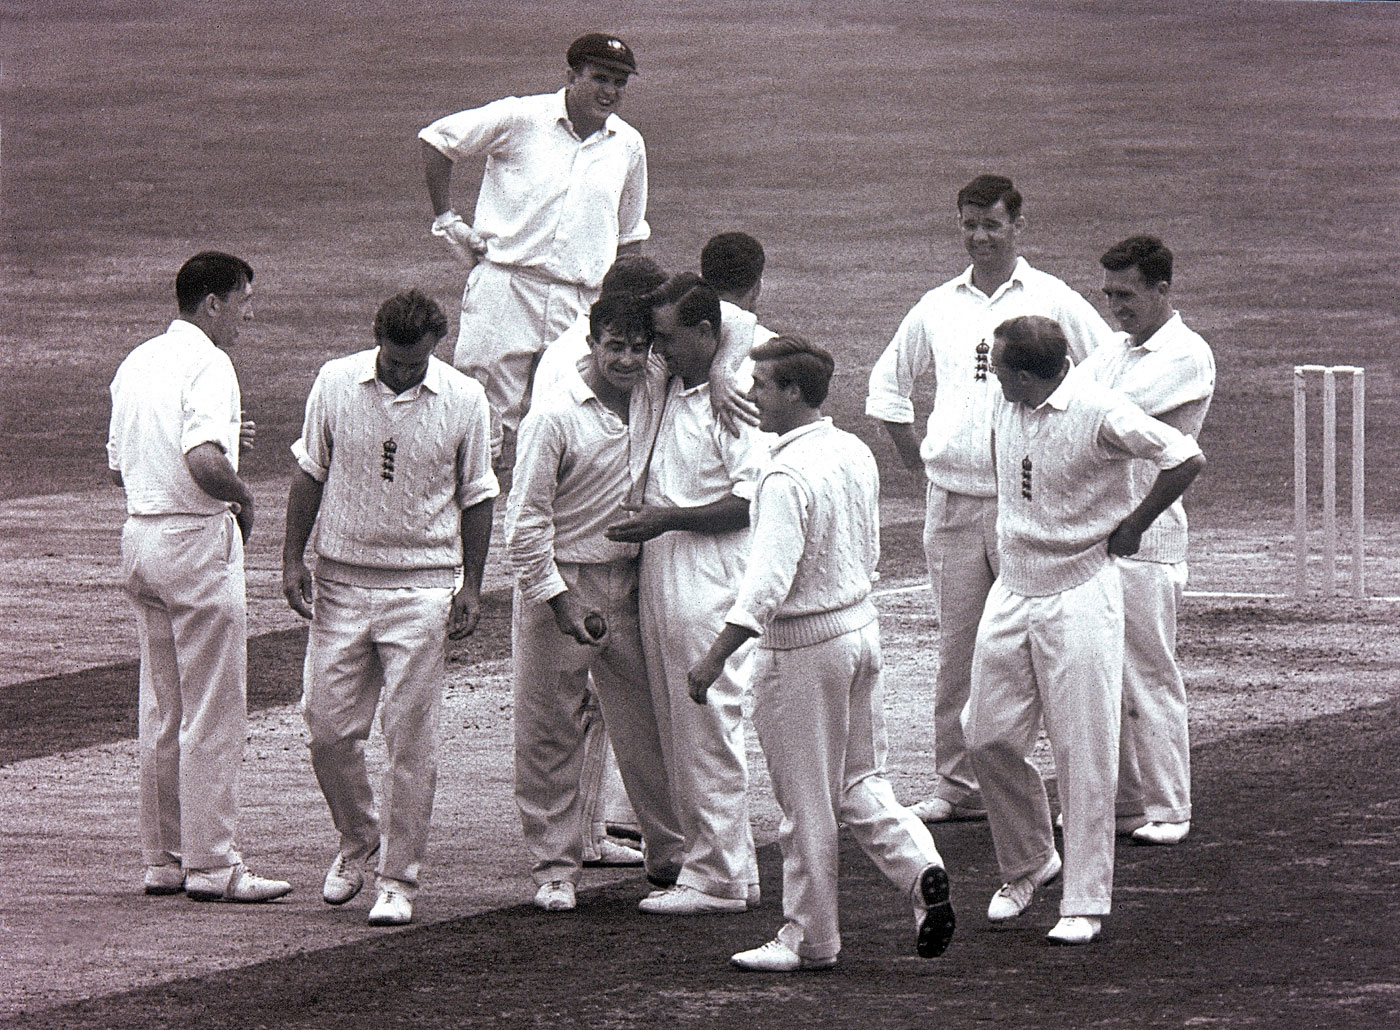 Fred Trueman is congratulated by Colin Cowdrey on taking his 300th Test wicket, England v Australia, The Oval, August 15, 1964